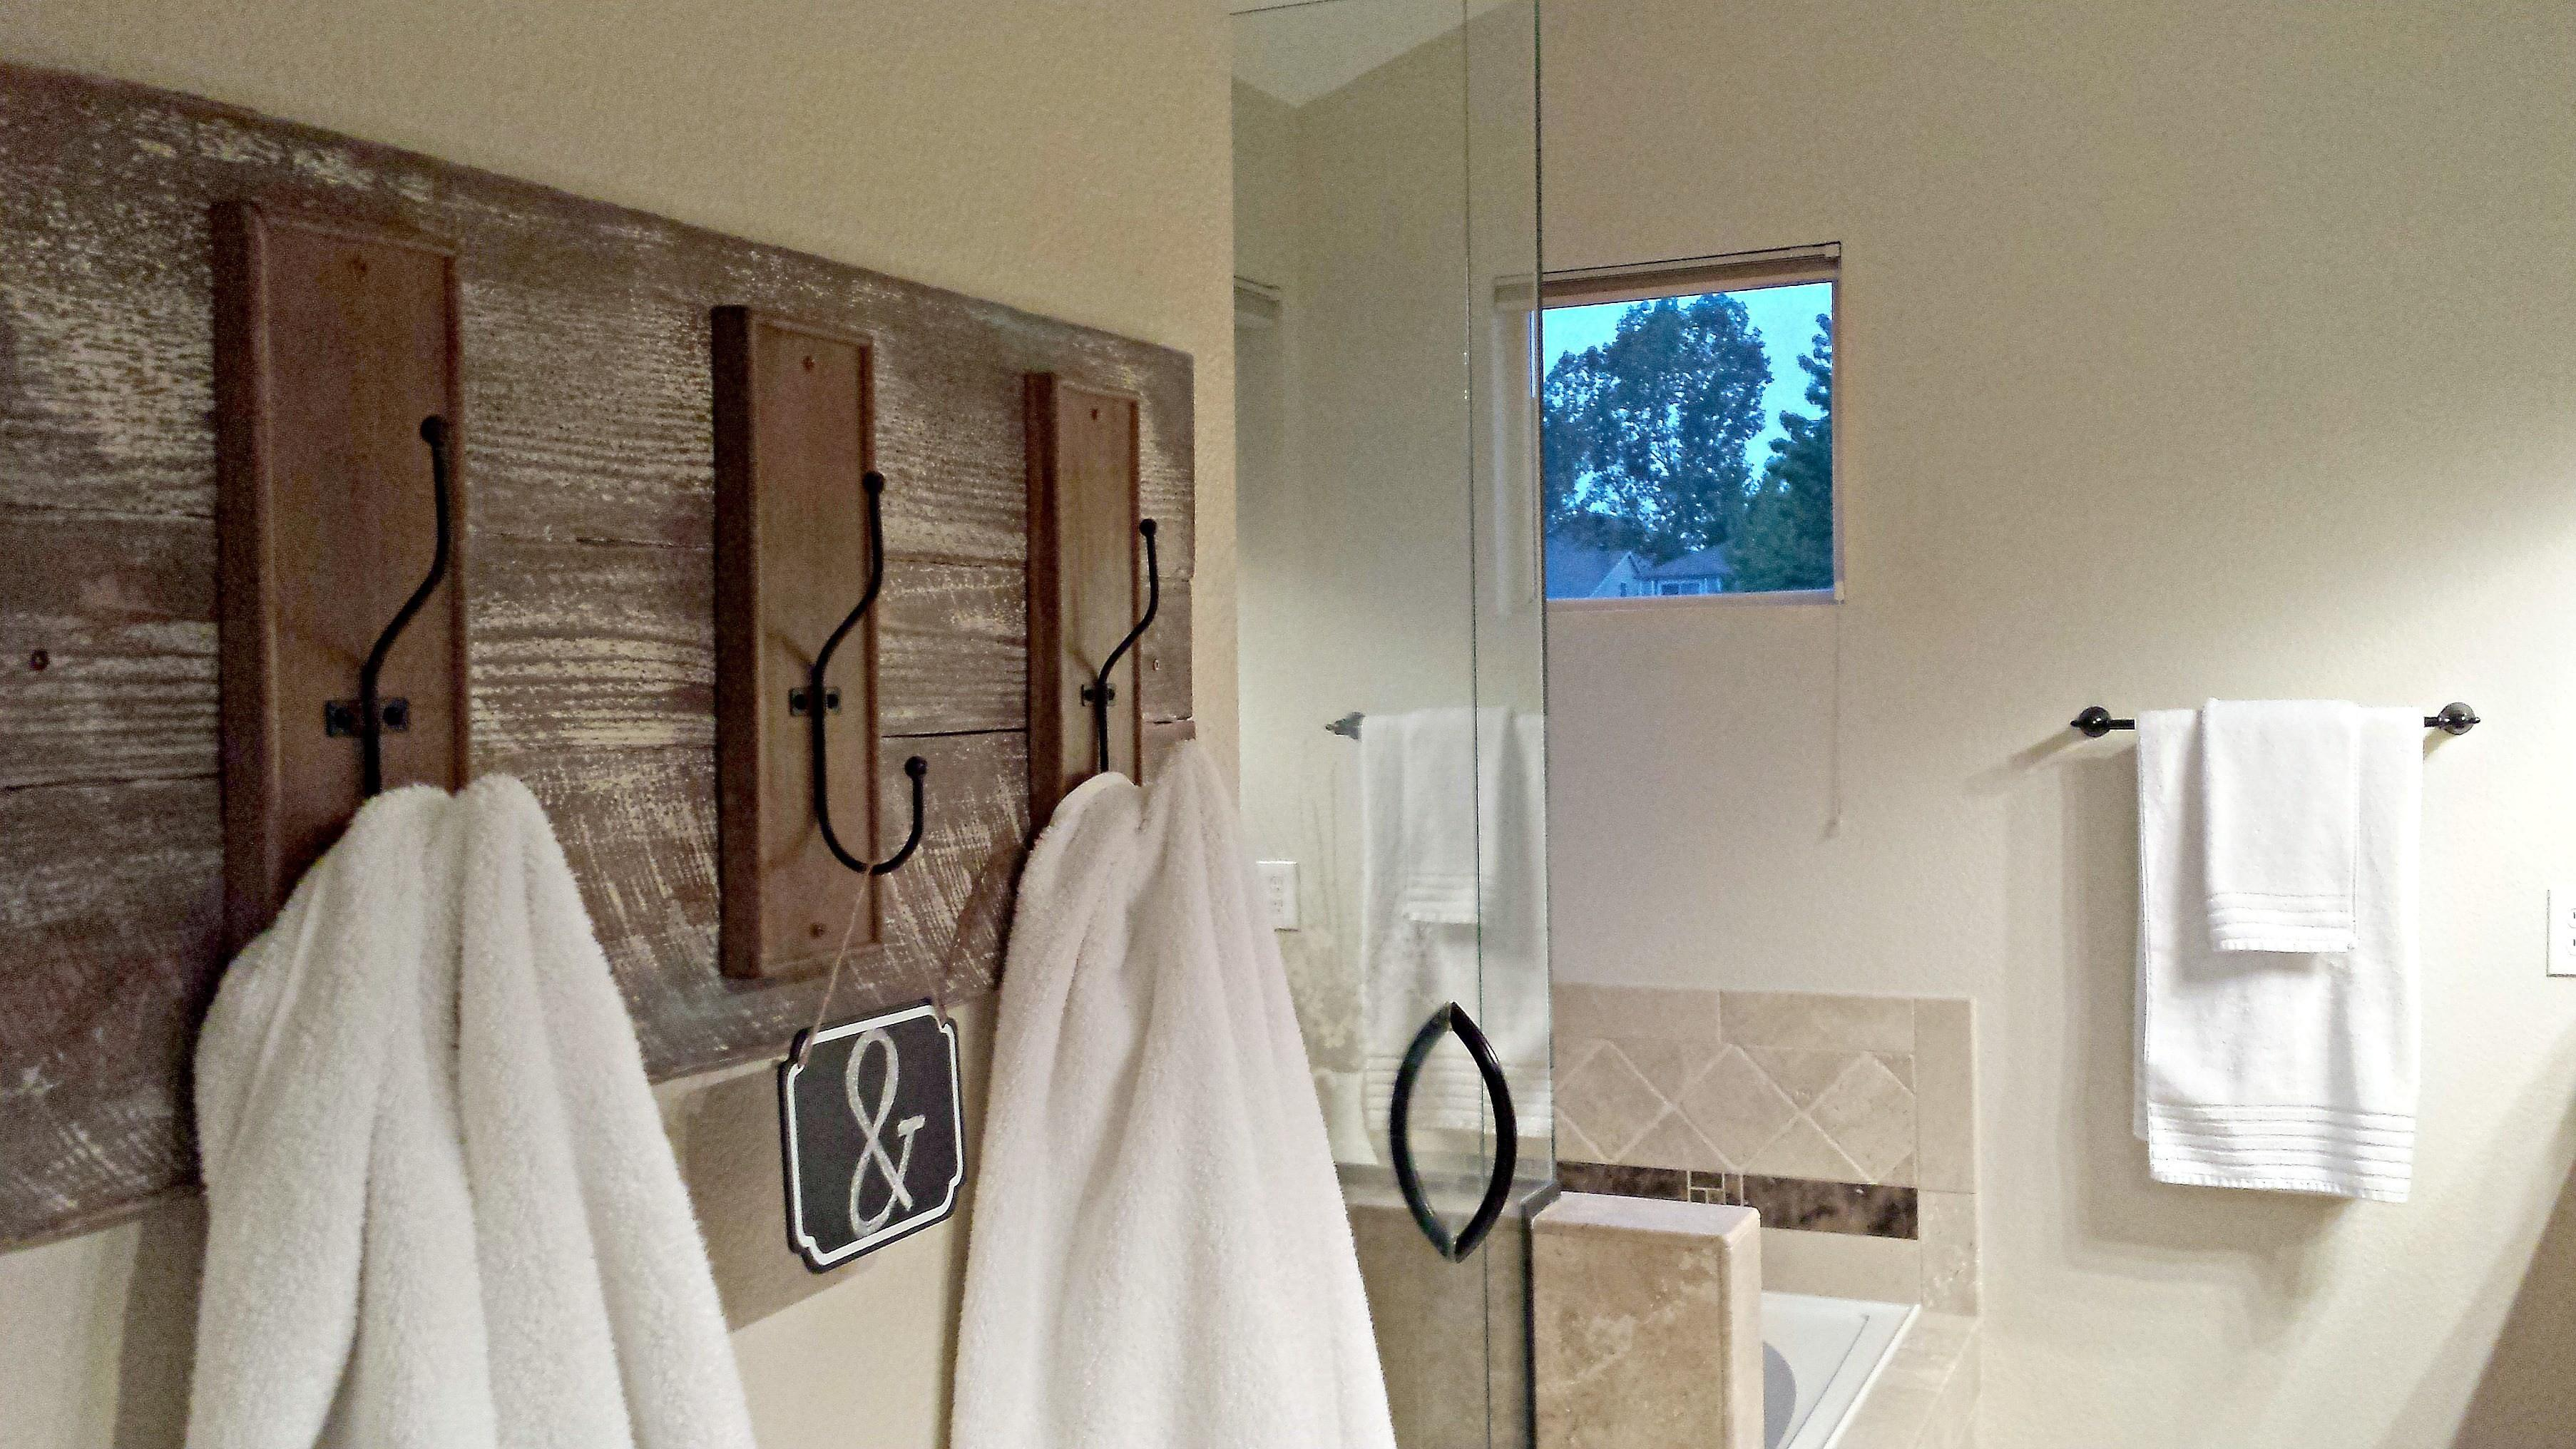 36 Elegant Rustic Diy Towel Organizer That Will Supply You With New Ideas Trends For 2020 Photo Gallery Decoratorist